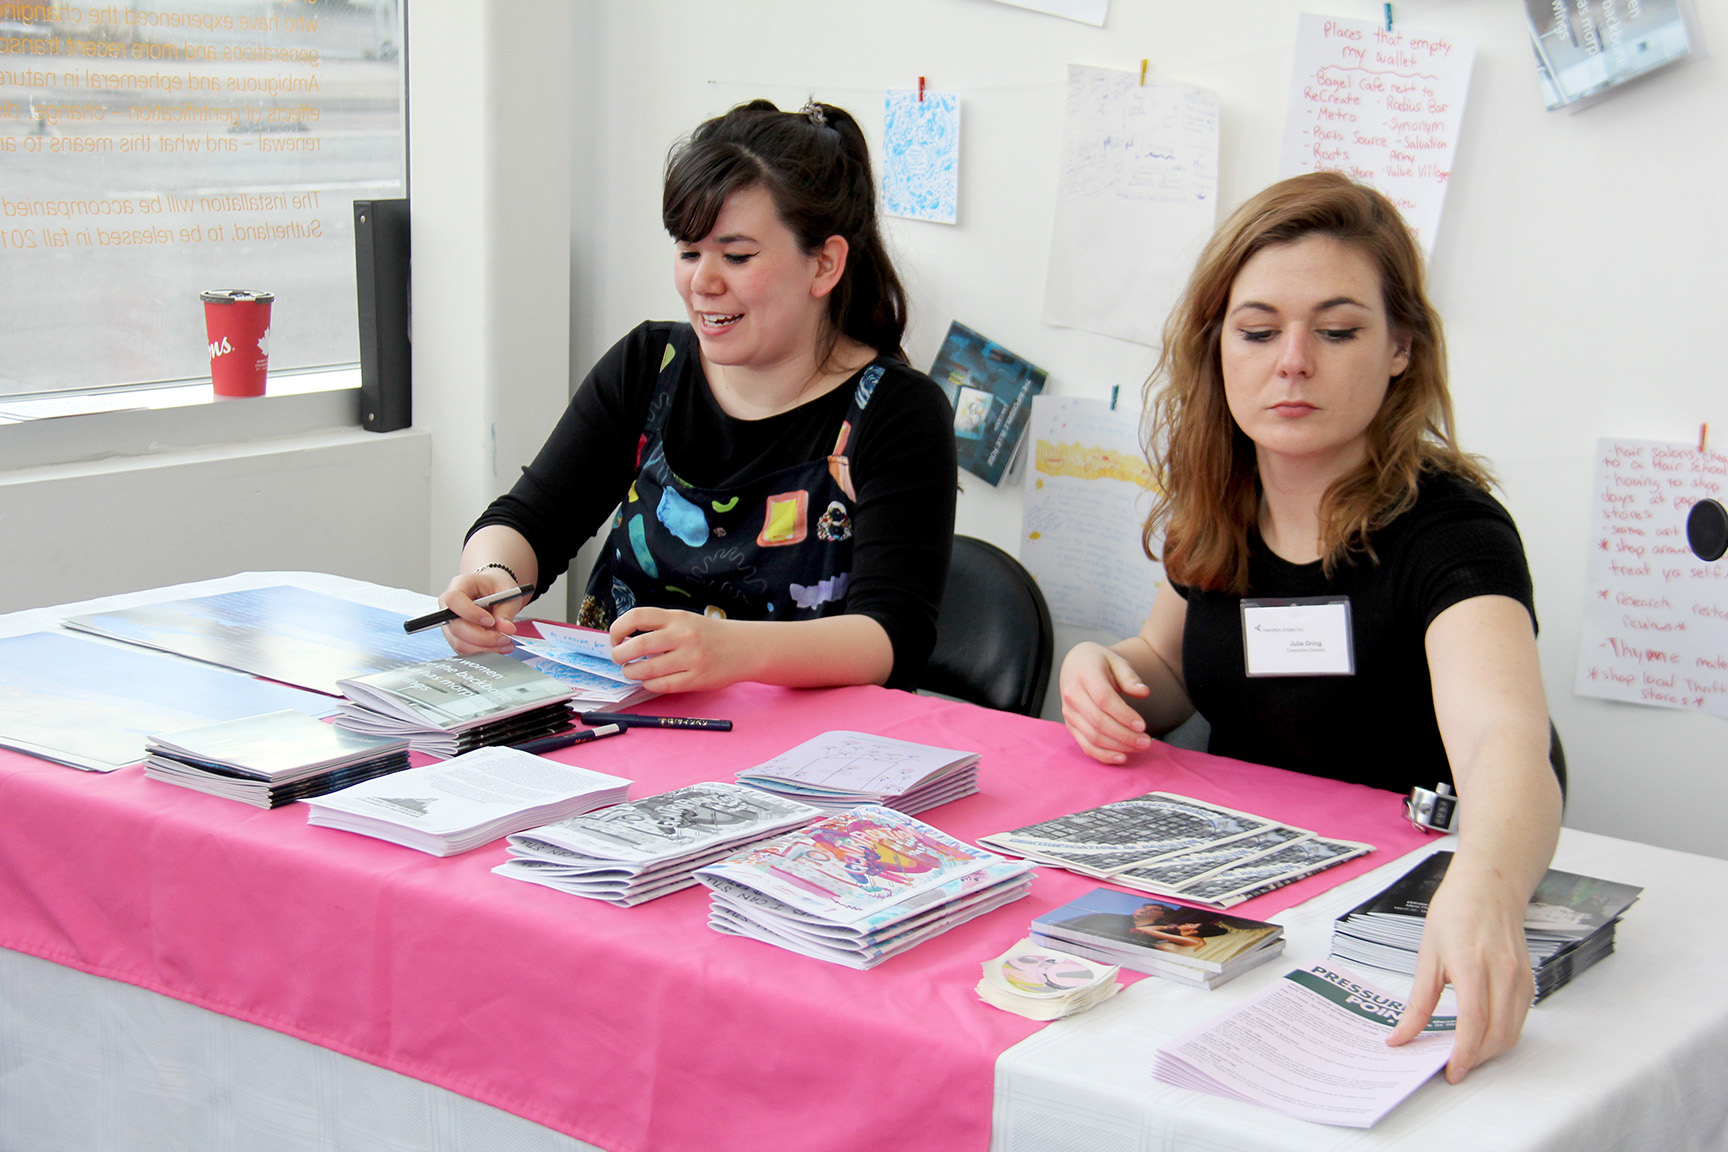 A brightly lit photo of two people seated behind the Zine and Reading corner, which was placed right behind the Inc.'s front door. One person is Julie Dring, a white woman with mid-length wavy hair and winged eyeliner. She is reaching over an assortment of zines and other printed materials on the table in front of her.